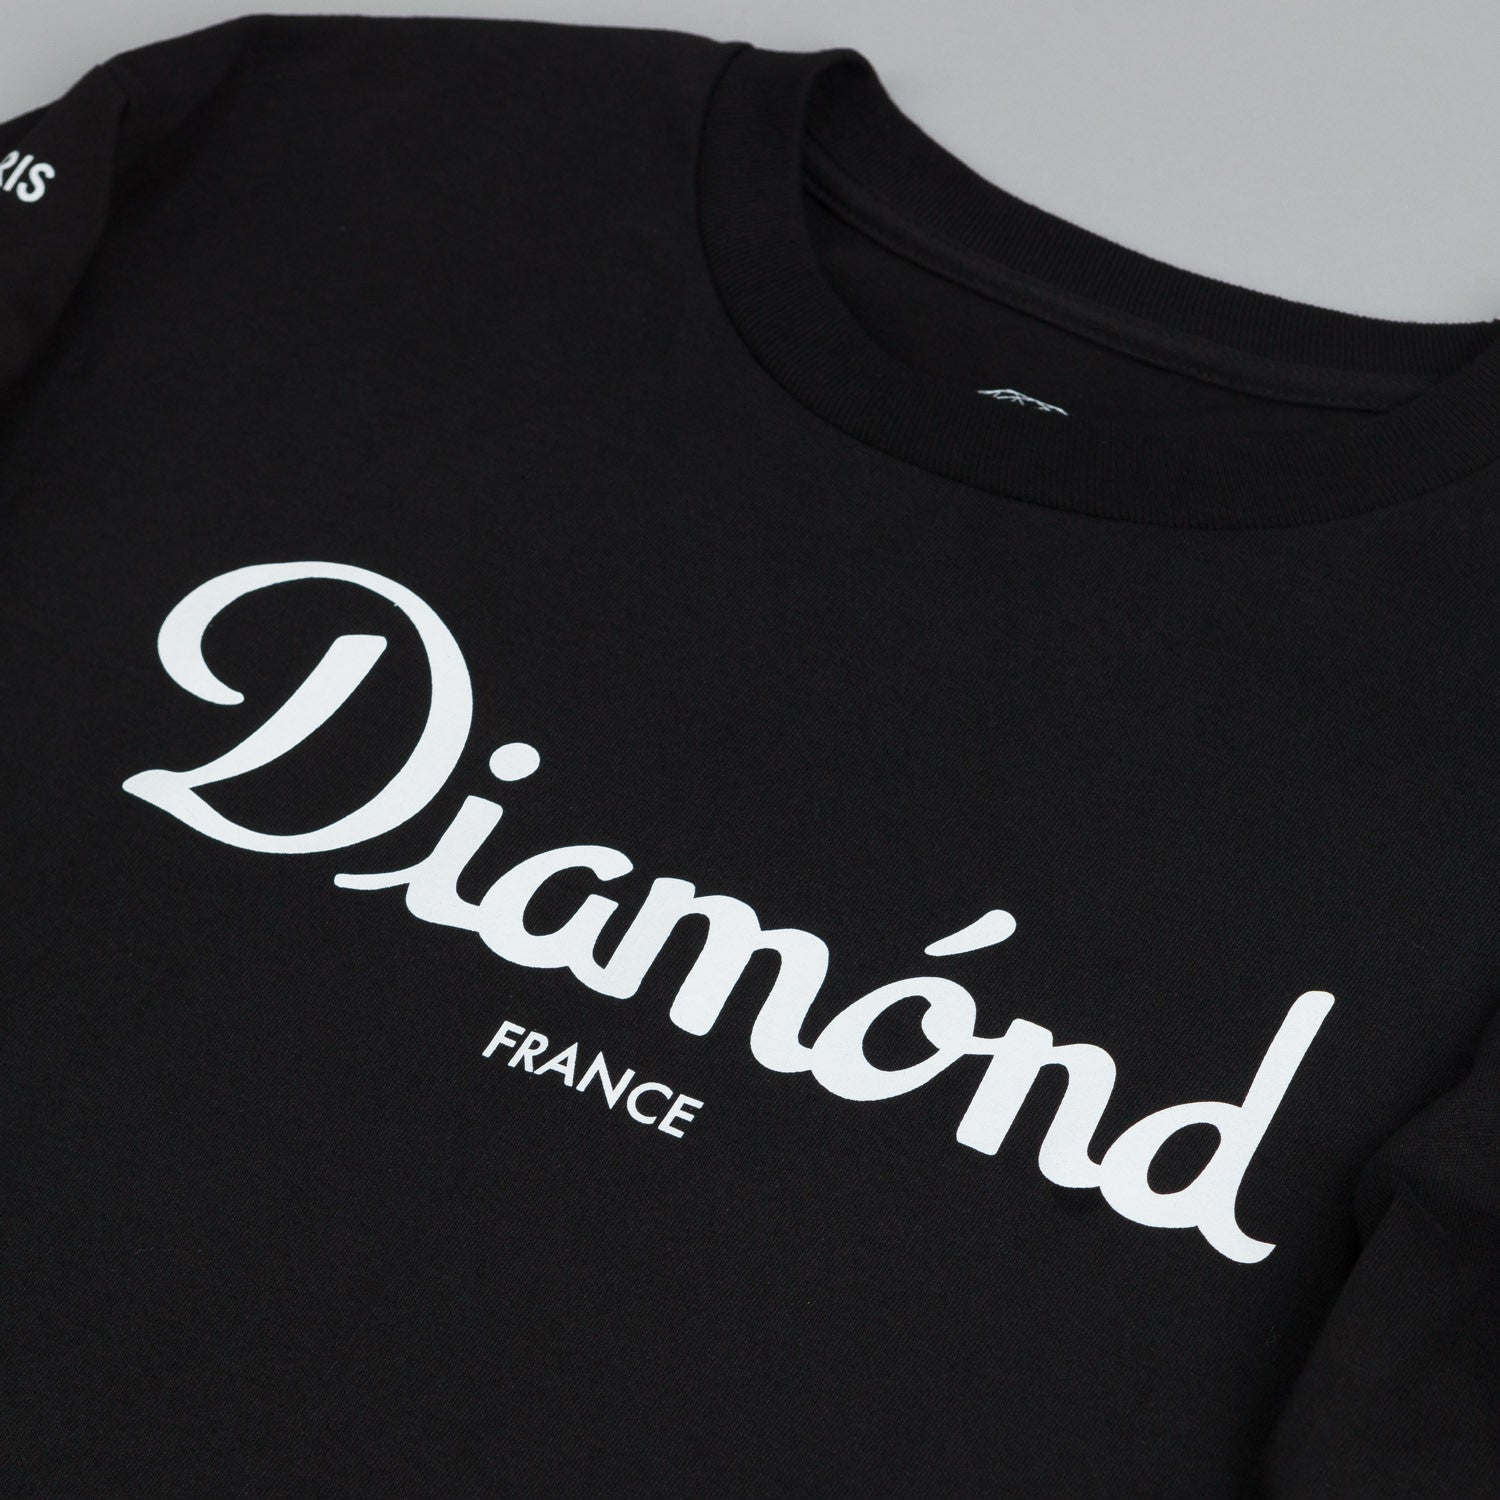 Diamond France Long Sleeve T Shirt Black